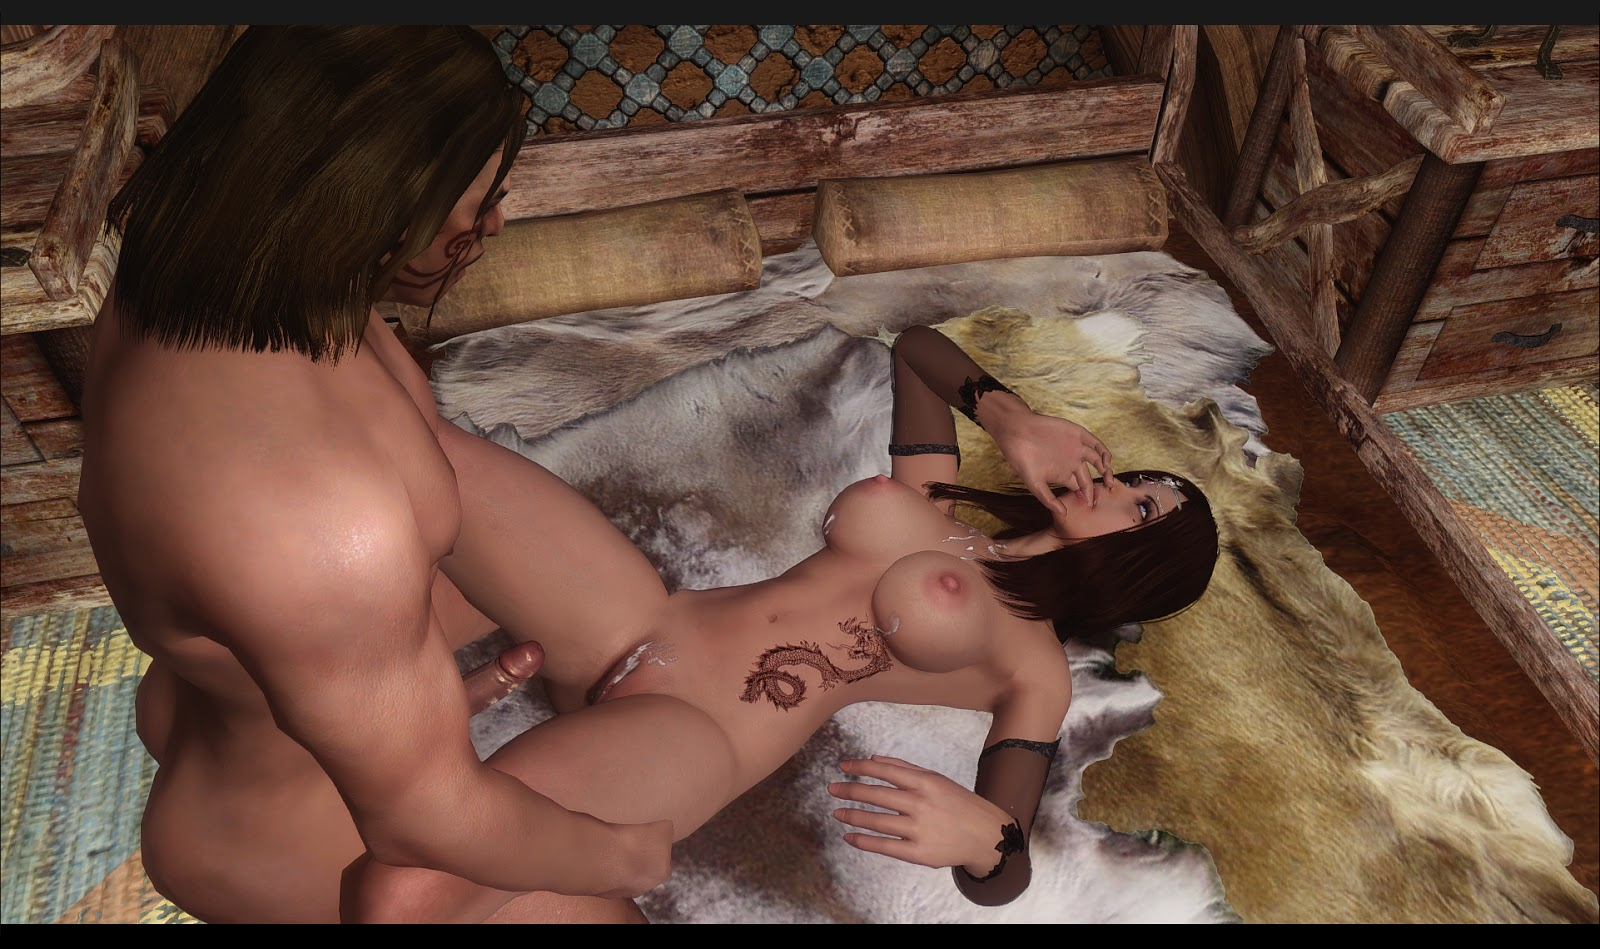 Skyrim adult-only mods sex hardcore cartoon picture